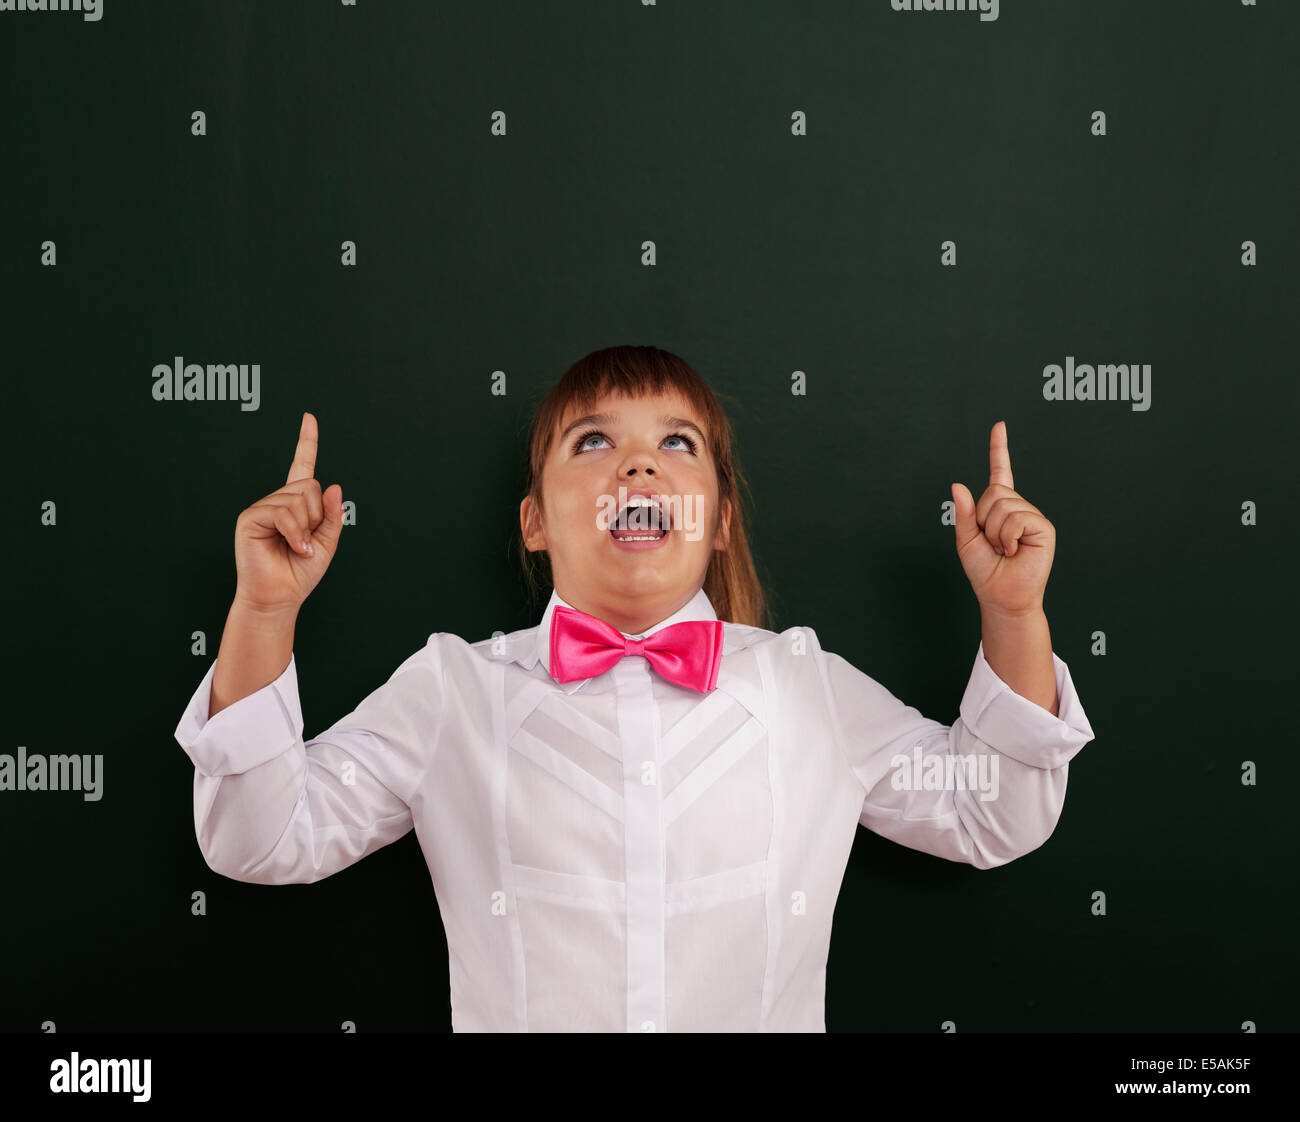 Smiling girl with pink bow tie pointing above her head, Debica, Poland. - Stock Image